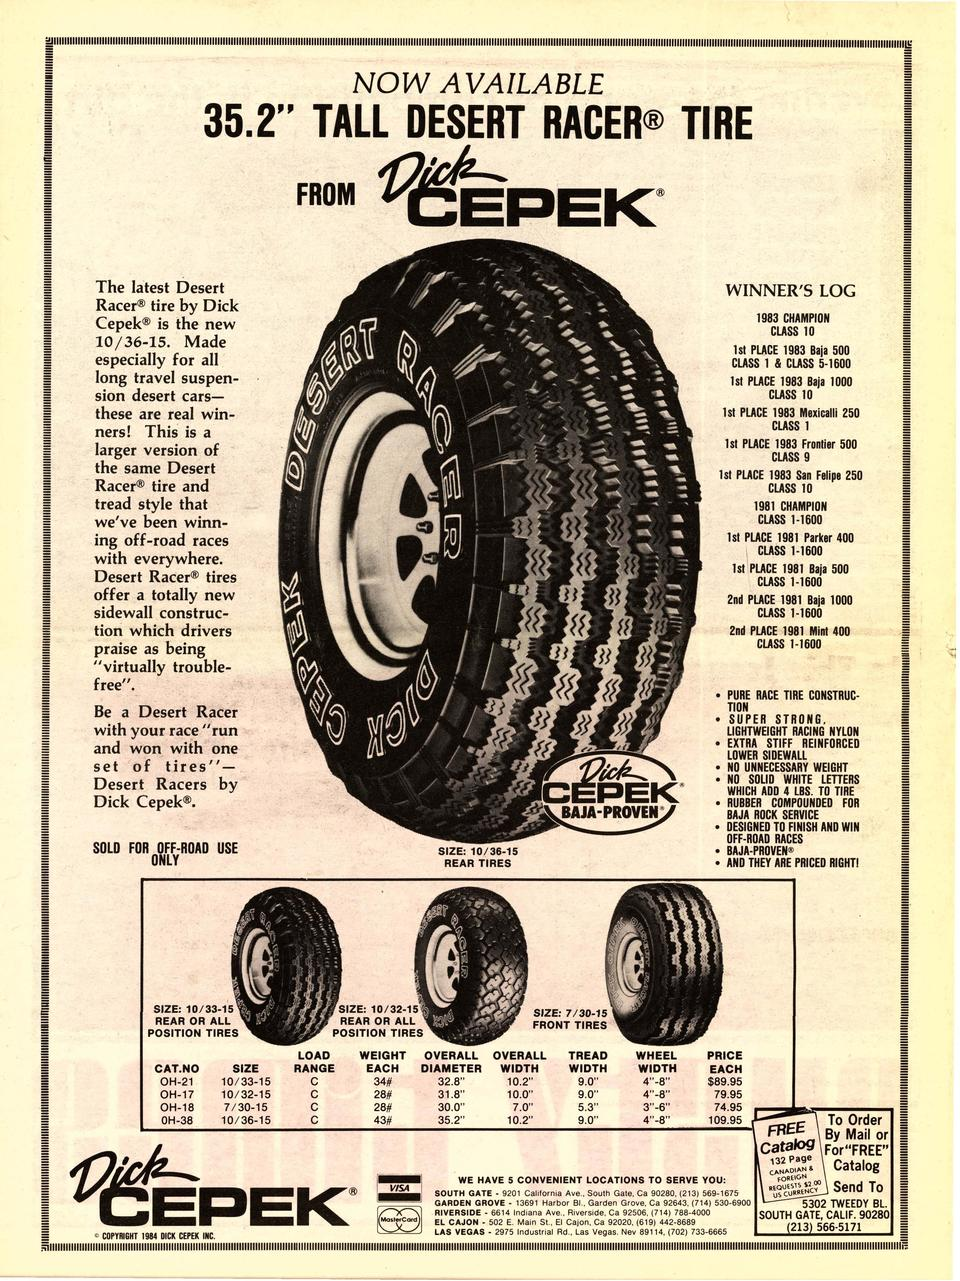 Be a Desert Racer with your race  run and won with one set of tires Desert Racers by Dick Cepek  .  To Order  By Mai...